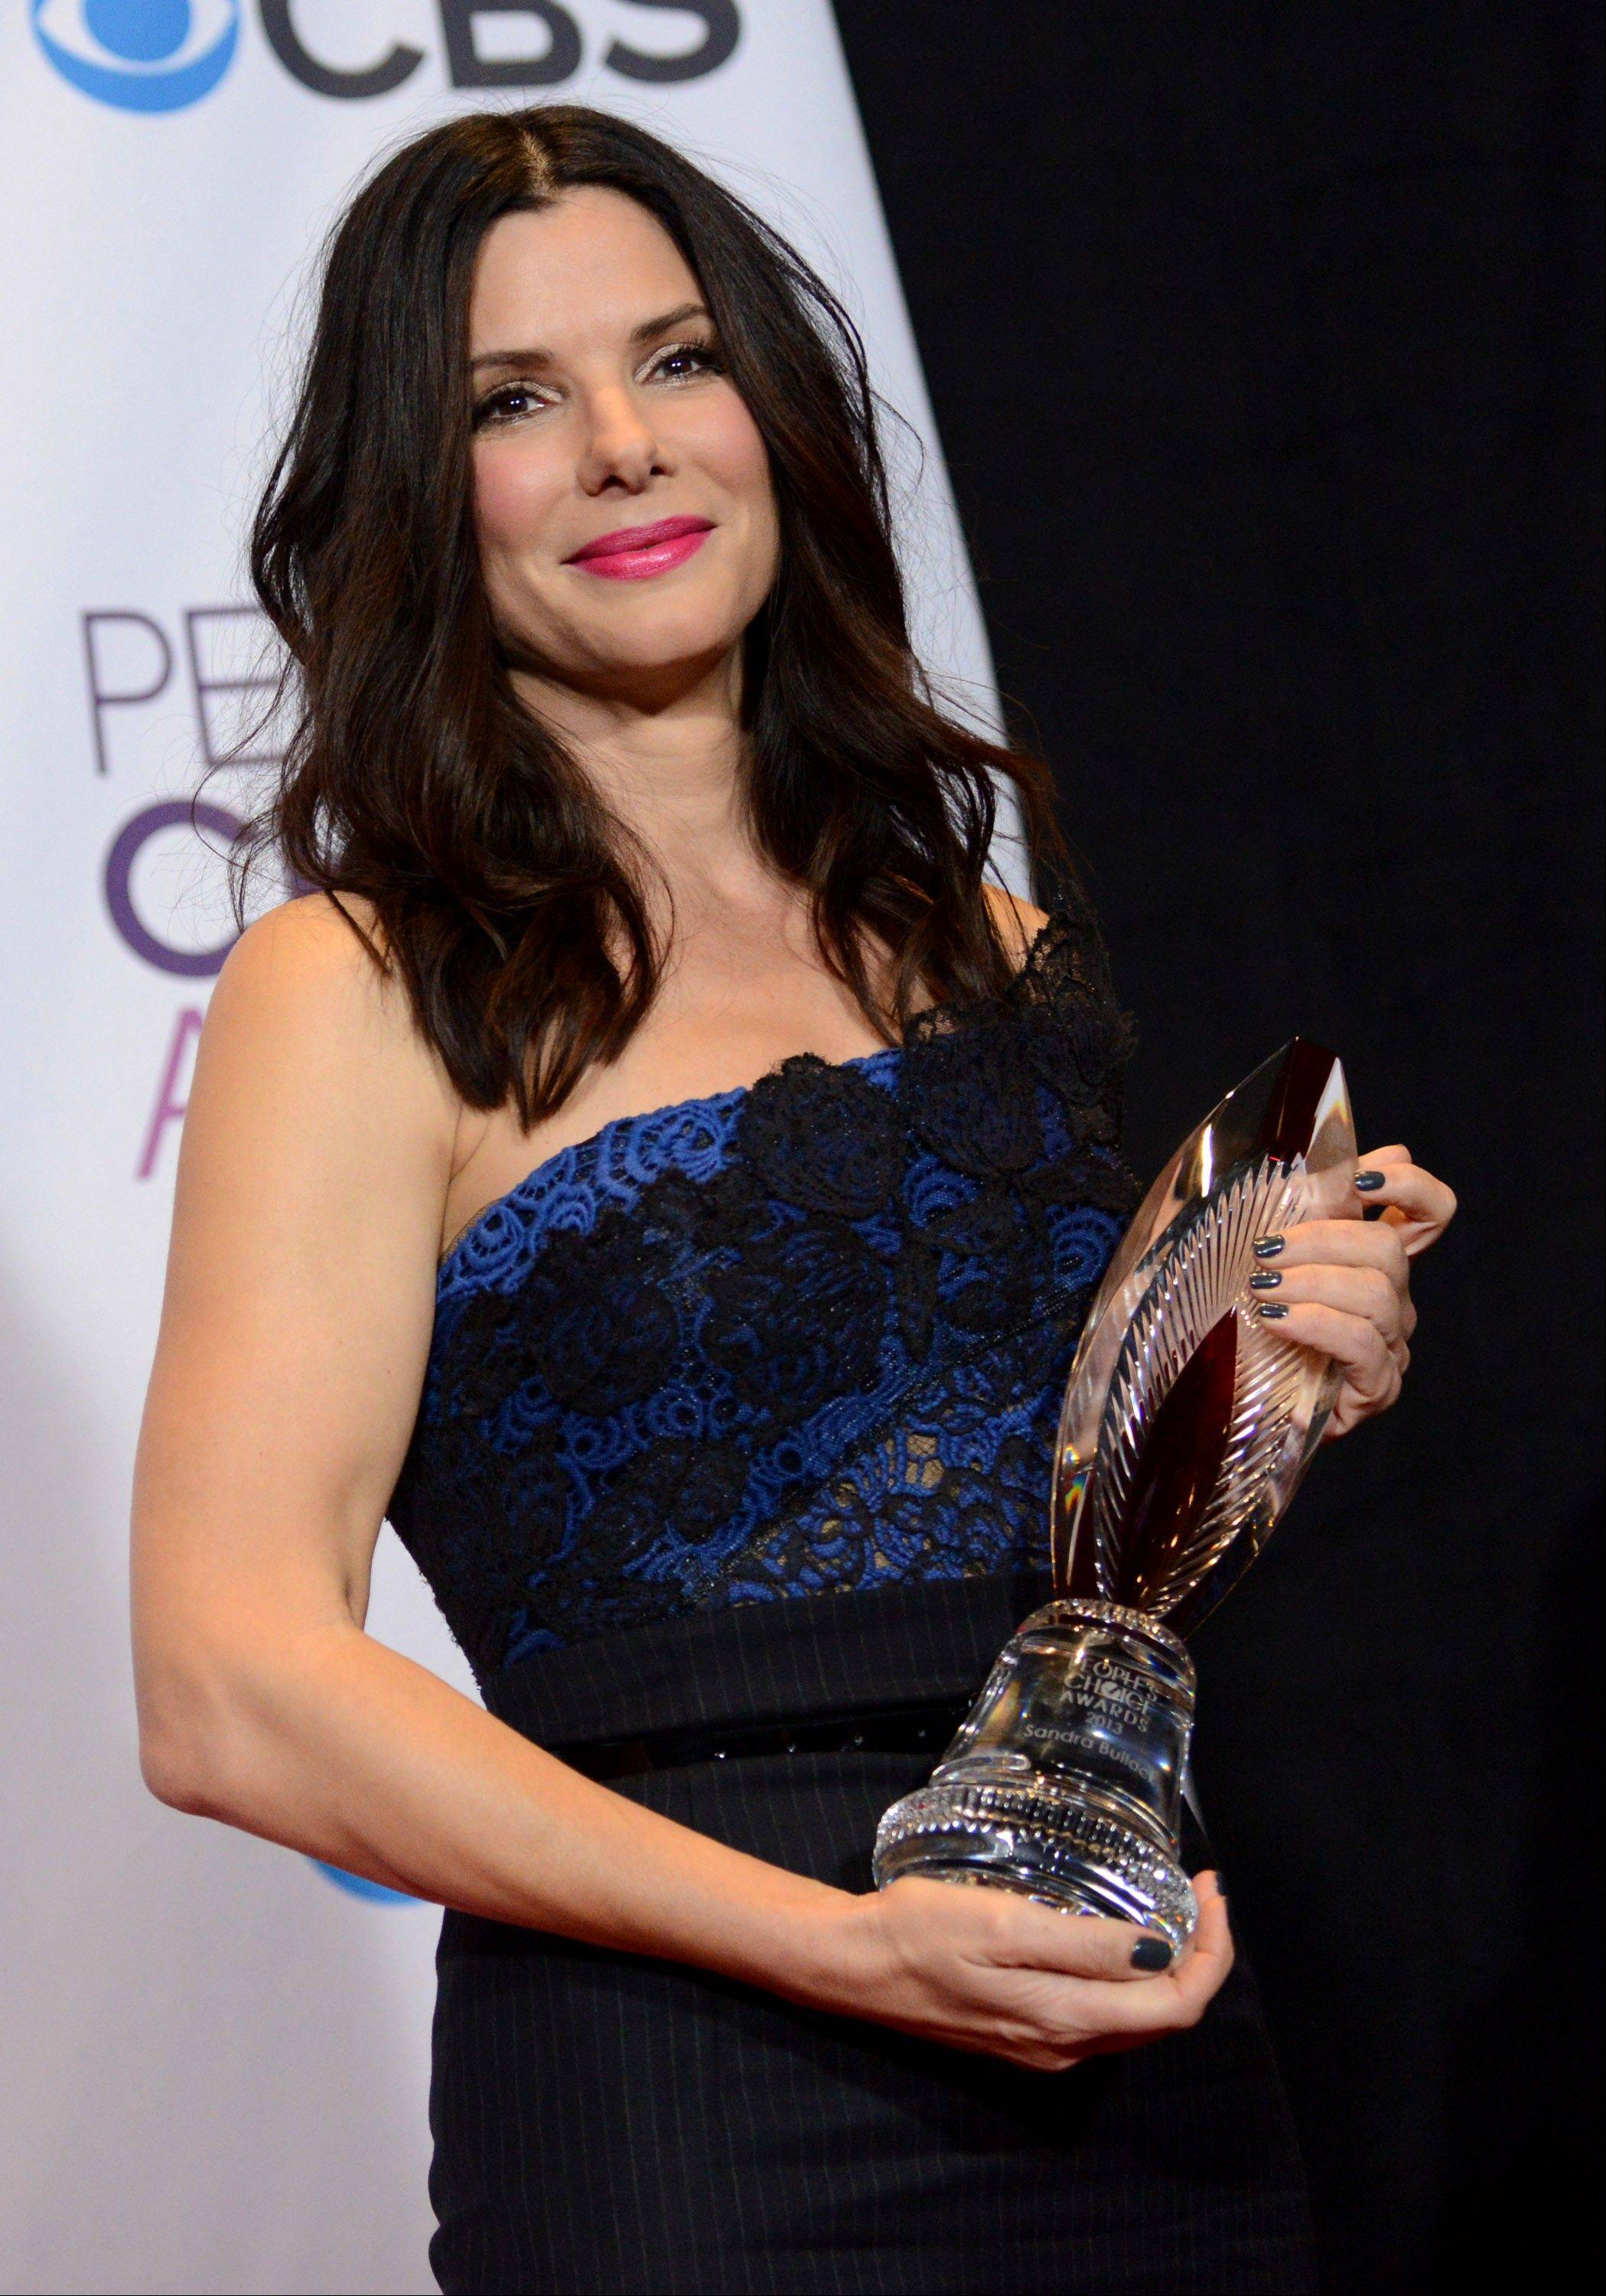 Sandra Bullock poses backstage with the award for favorite humanitarian at the People's Choice Awards at the Nokia Theatre on Wednesday Jan. 9, 2013, in Los Angeles.